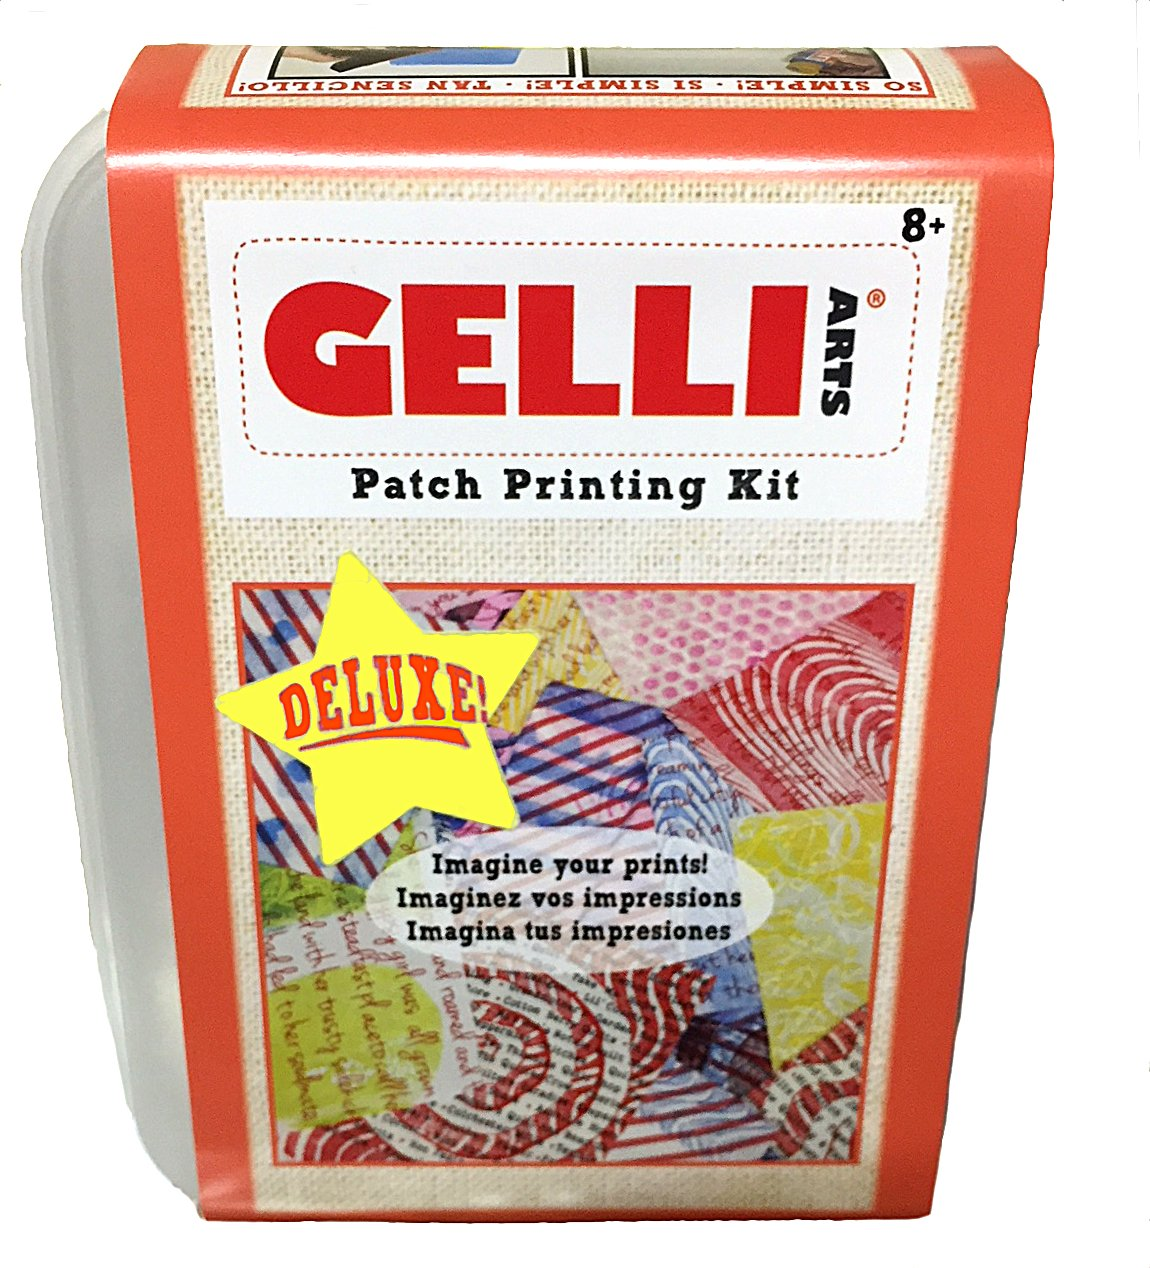 Gelli Arts Deluxe Fabric Printing Kit -All in One DIY Craft Set with 5 x 5 Gel Printing Plate, Five Premium Paint Colors, Roller, Paper, Storage Container and More! by Gelli Arts